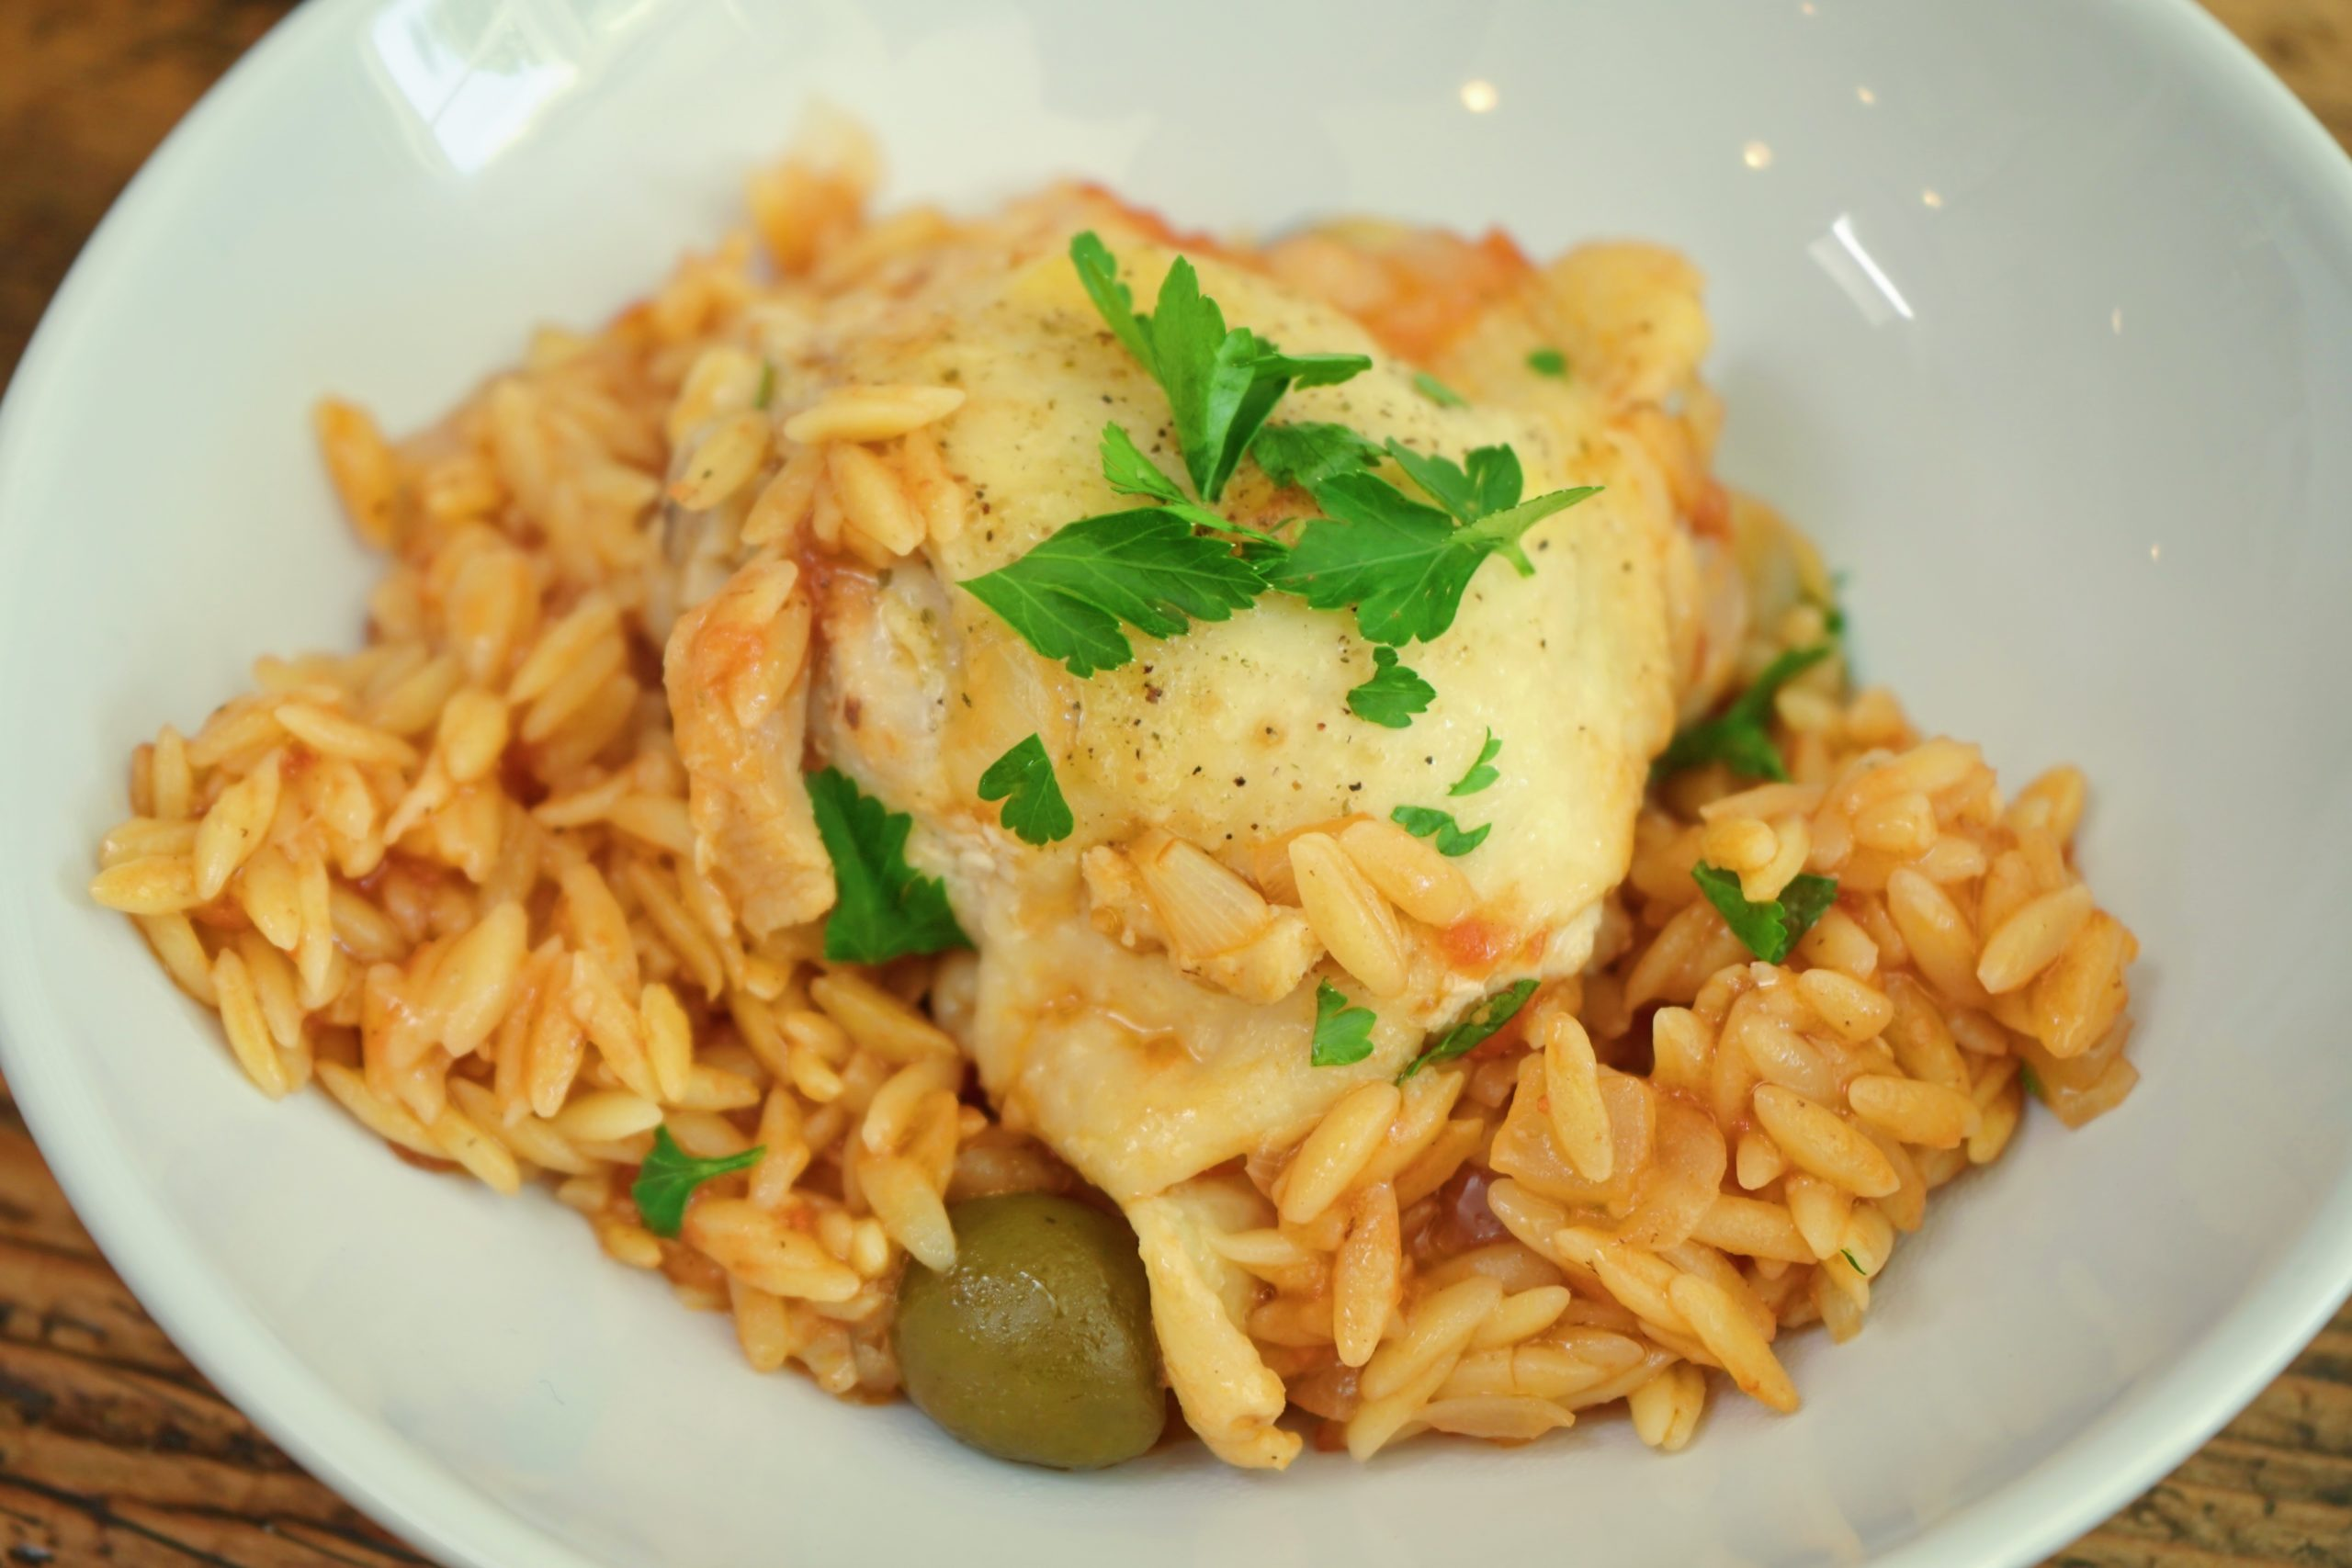 Chicken and Orzo pasta